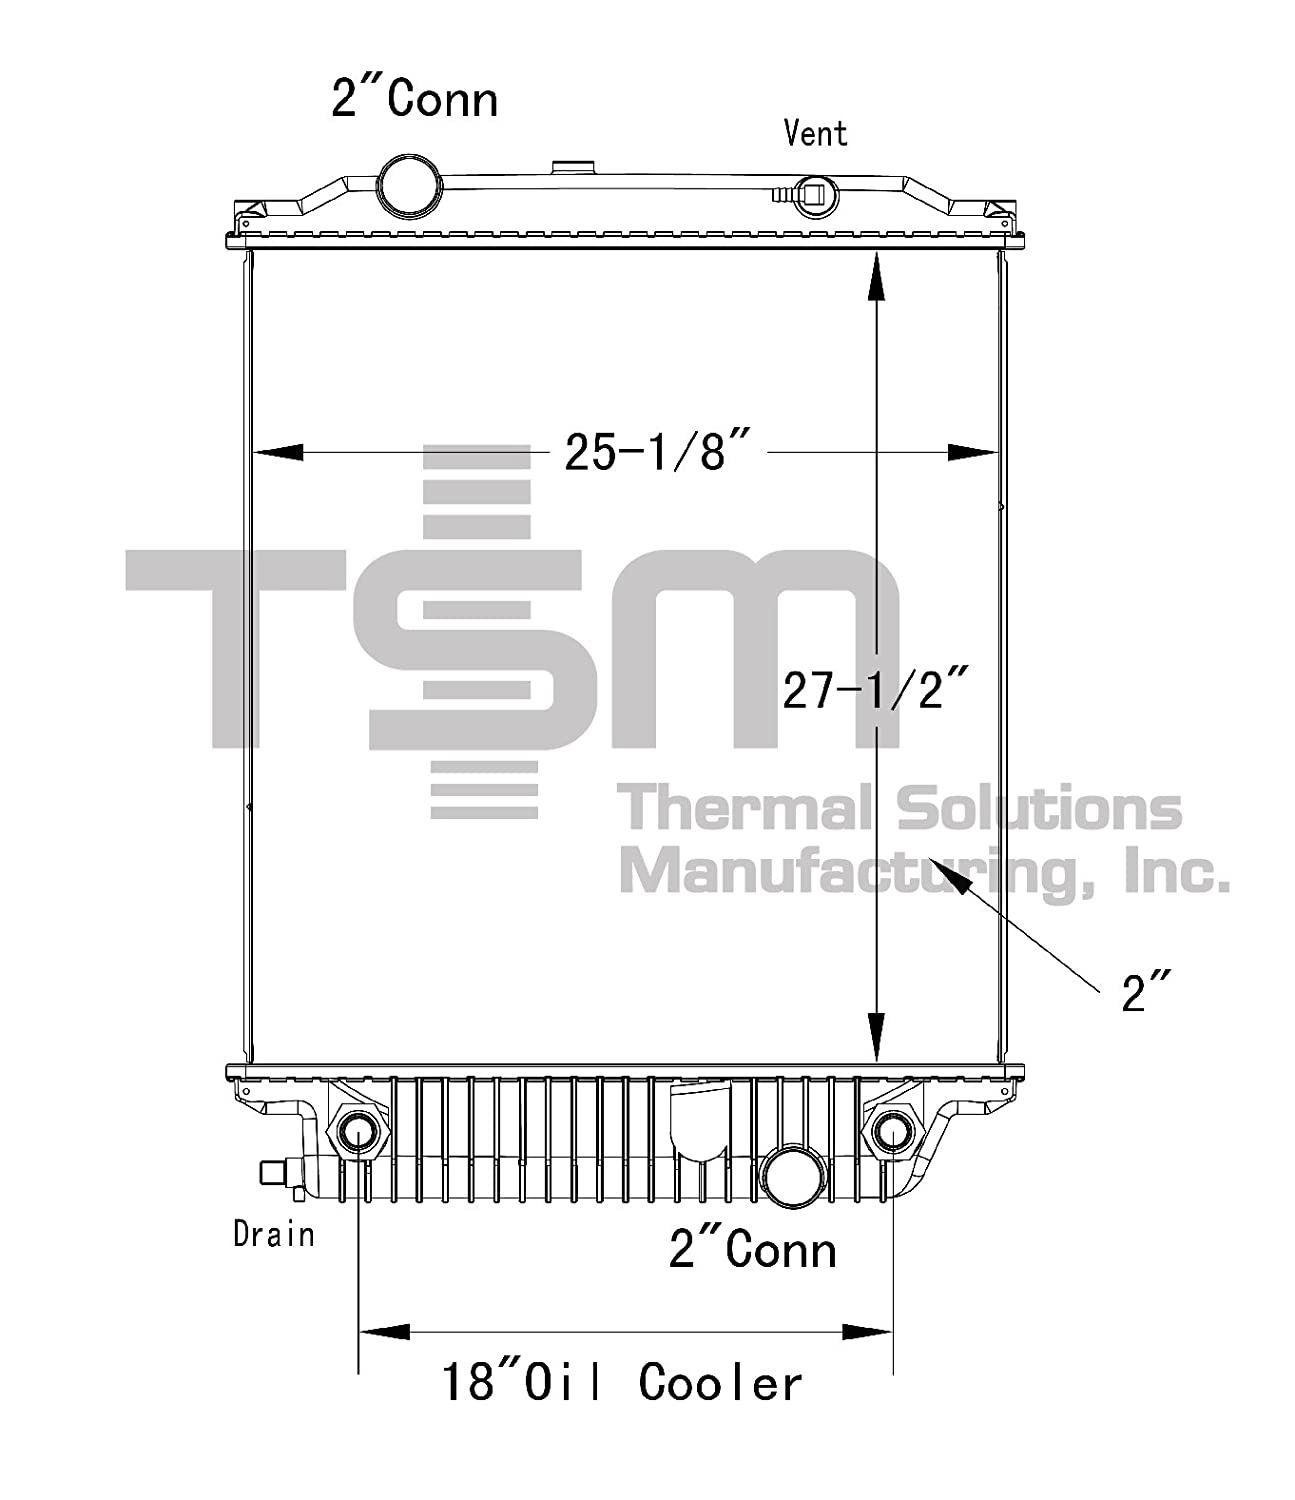 Wiring Diagrams In Addition Wiring Diagram For 2007 Freightliner